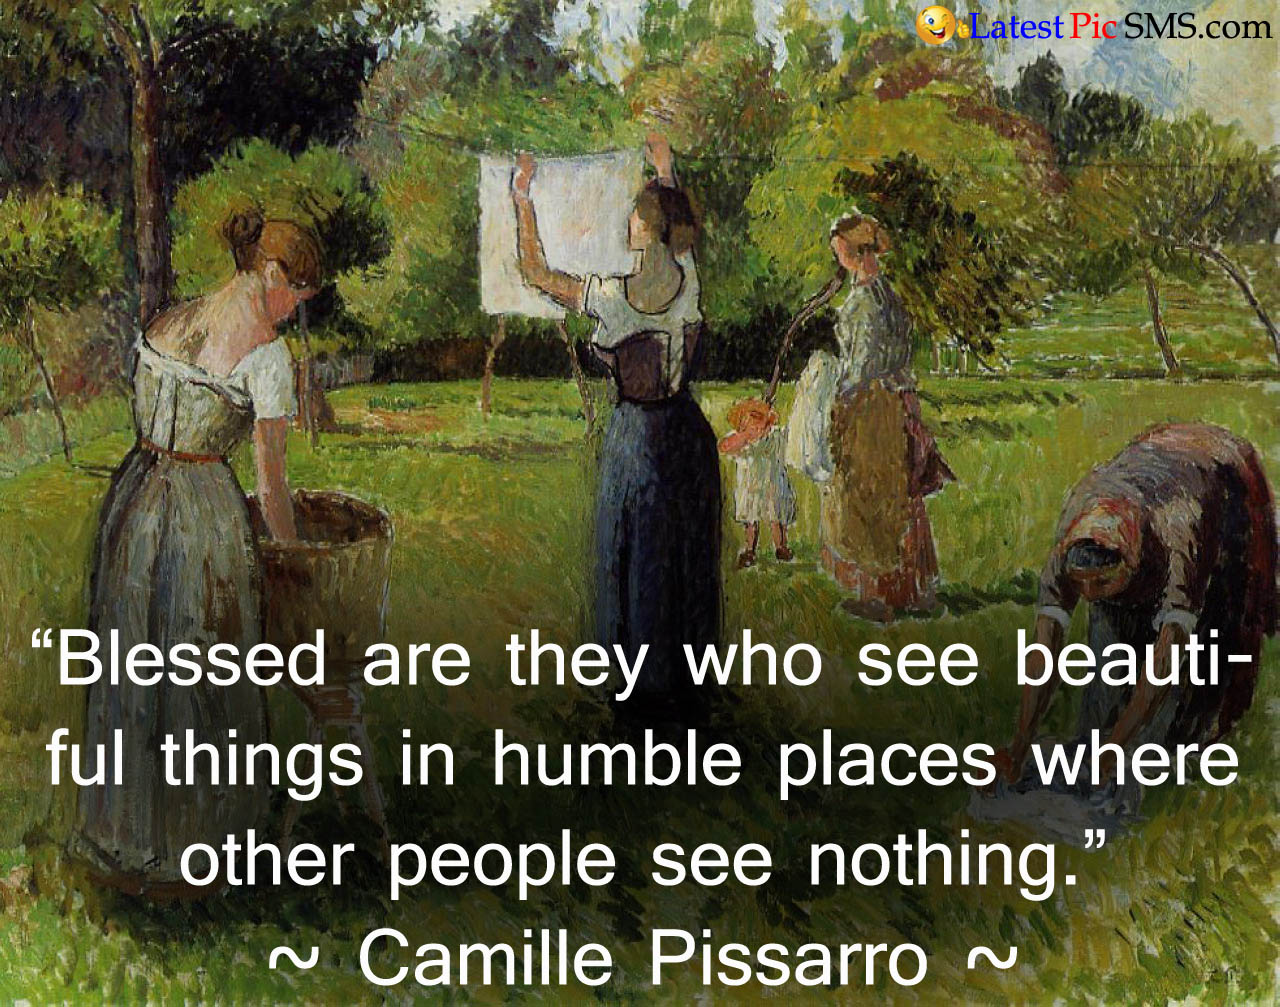 Camille pissarro Beautiful Thought Images